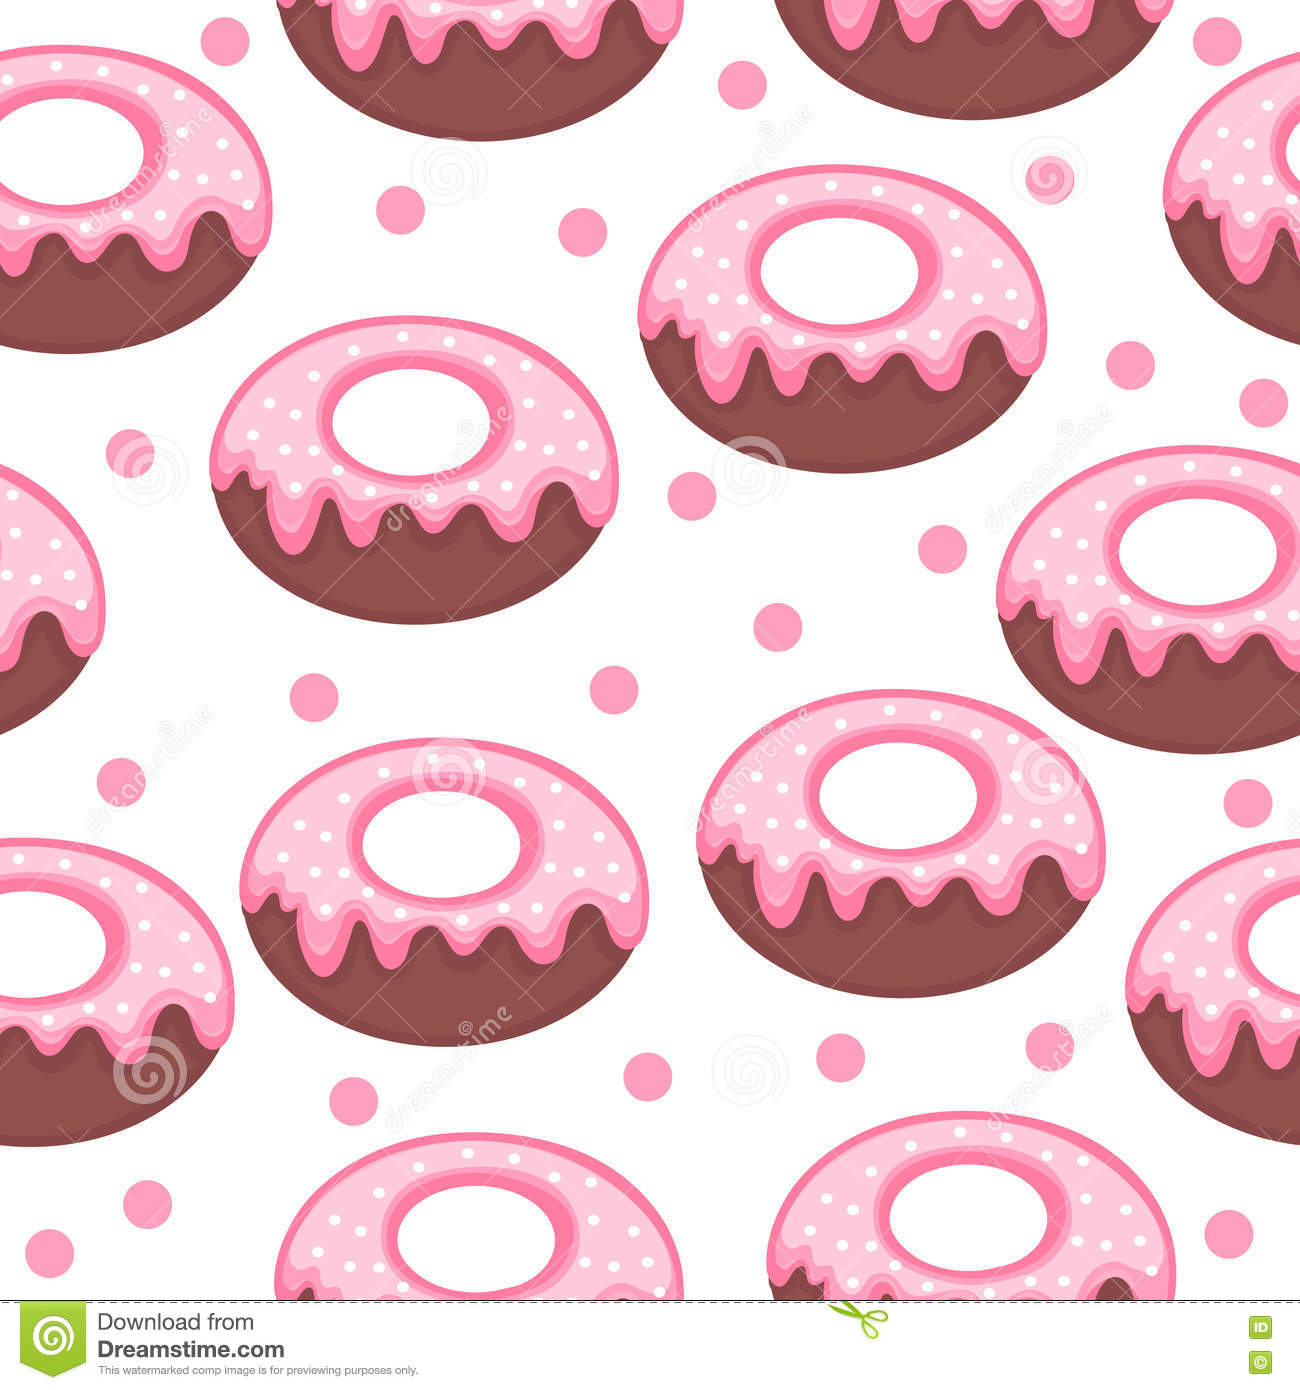 baby pink wallpaper stock vector. illustration of artistic - 9481827